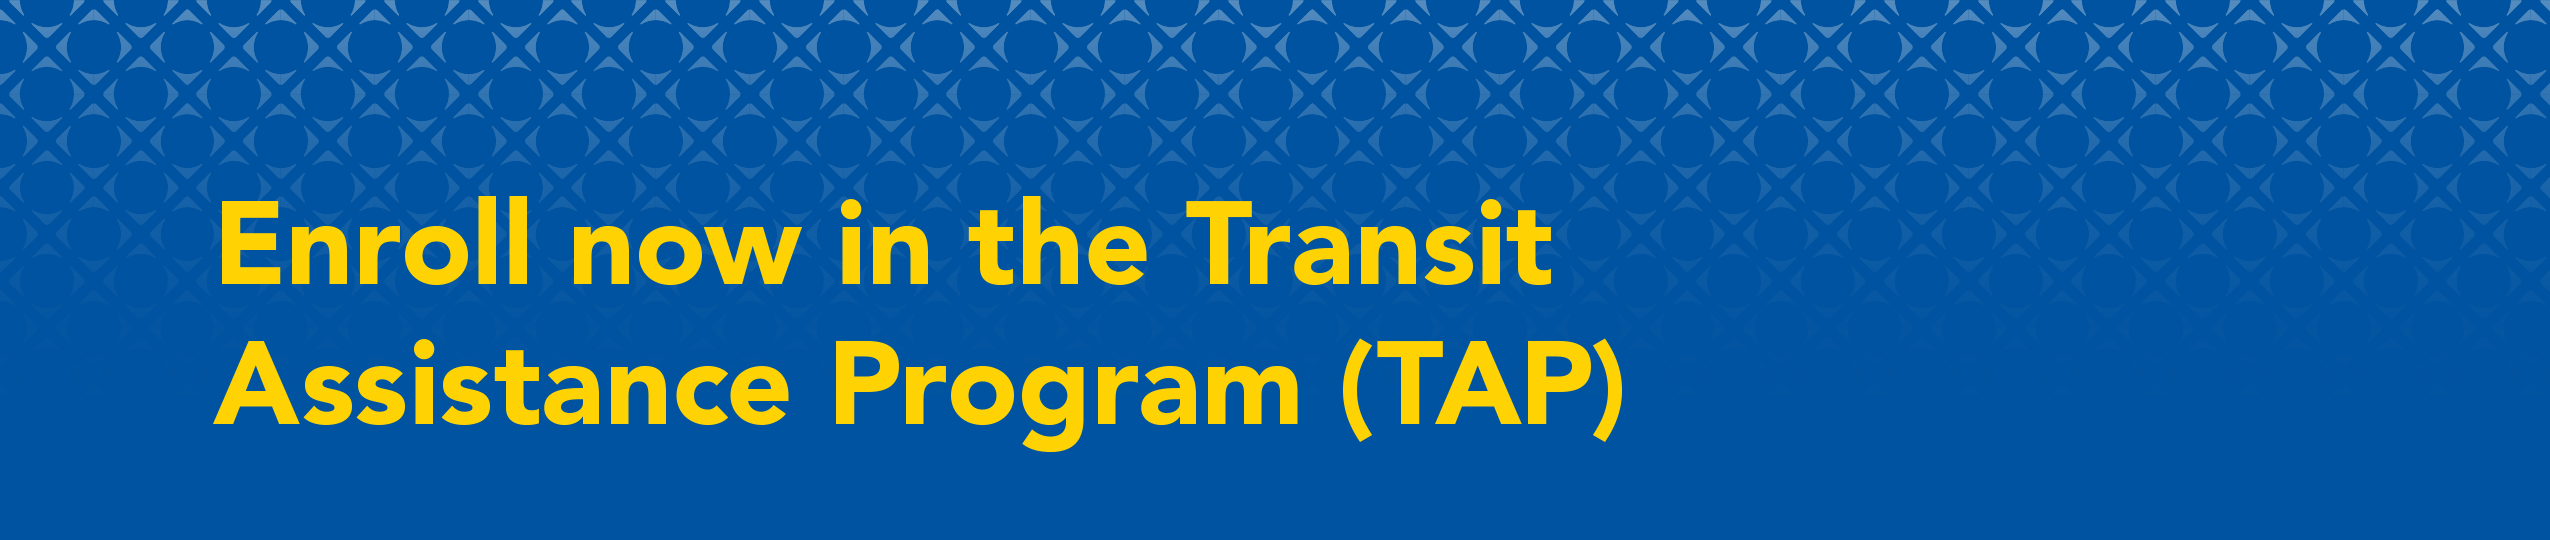 Enroll now in the Transit Assistance Program (TAP)